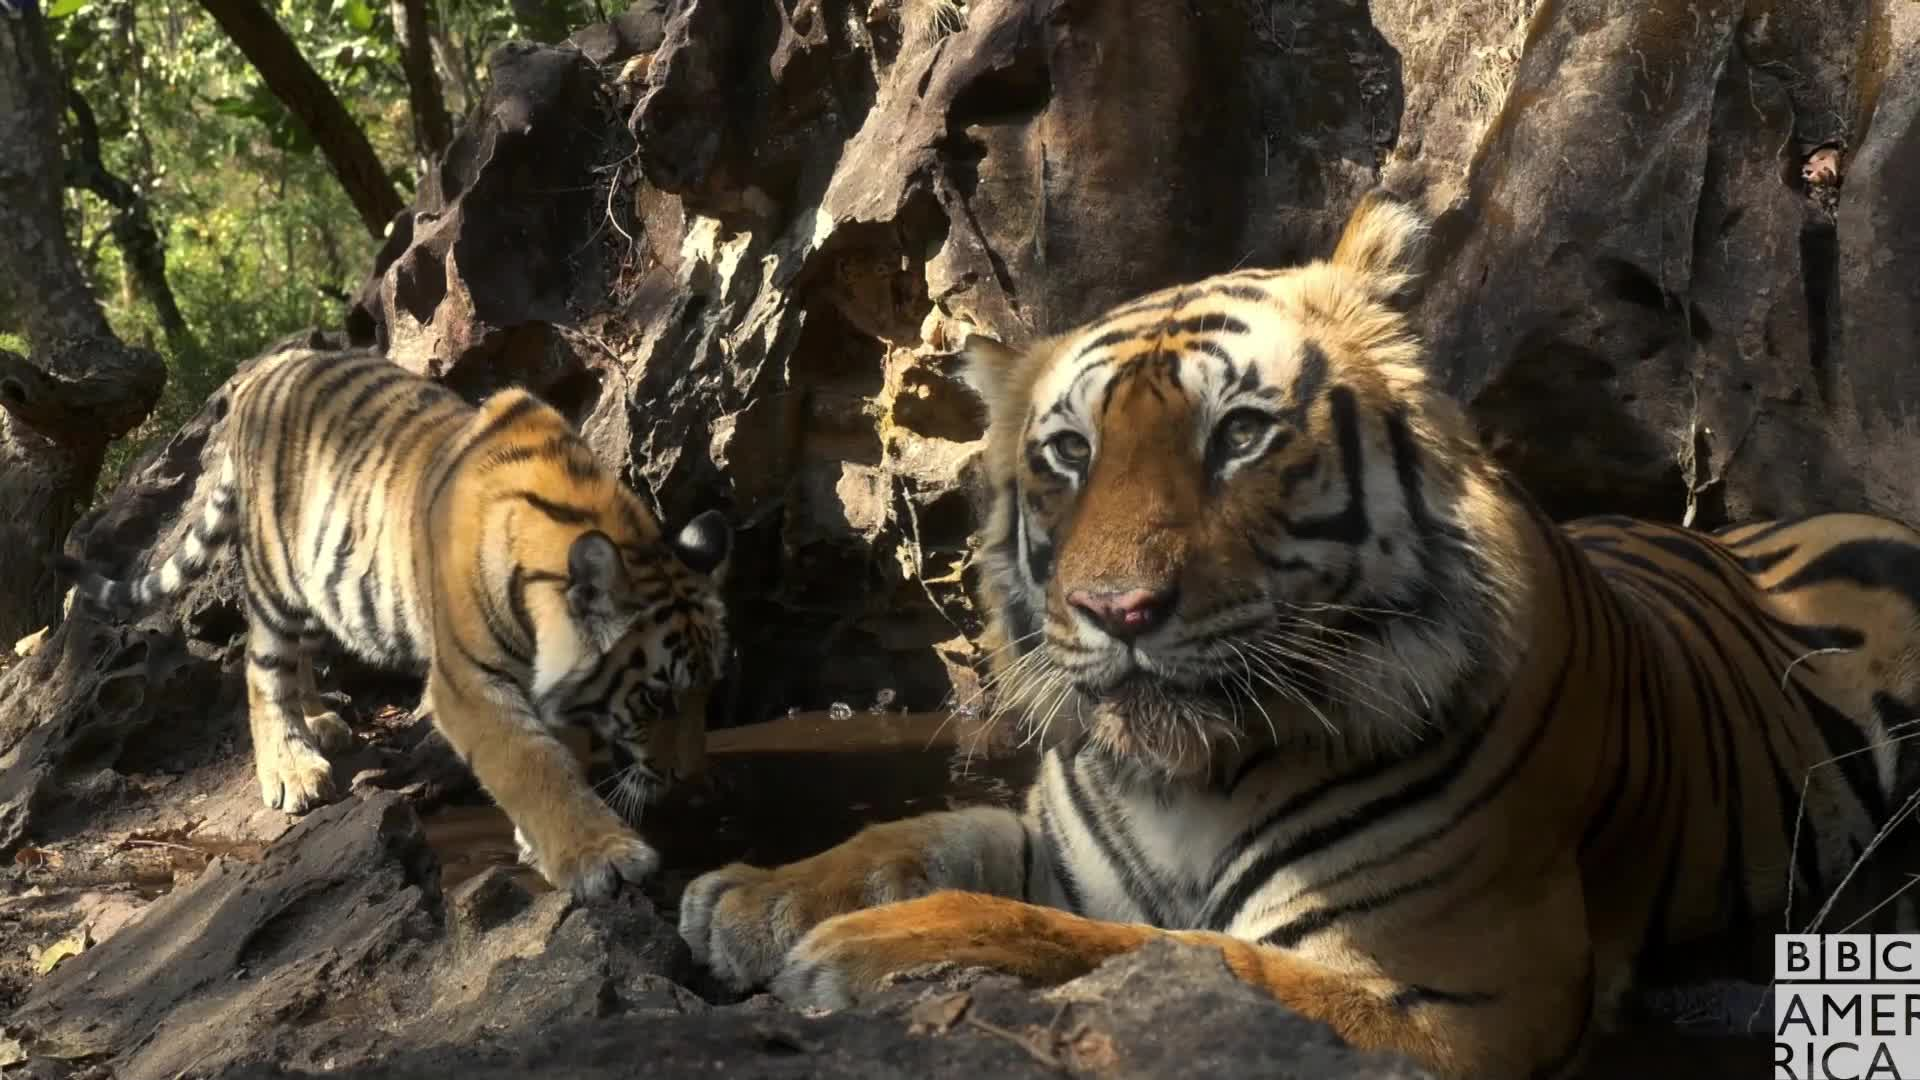 animal, animals, bbc america, bbc america dynasties, bbc america: dynasties, bye, dynasties, goodbye, i'm out, let's bounce, let's go, let's leave, peace, peace out, tiger, tigers, Dynasties Tiger Dad Peaces Out GIFs